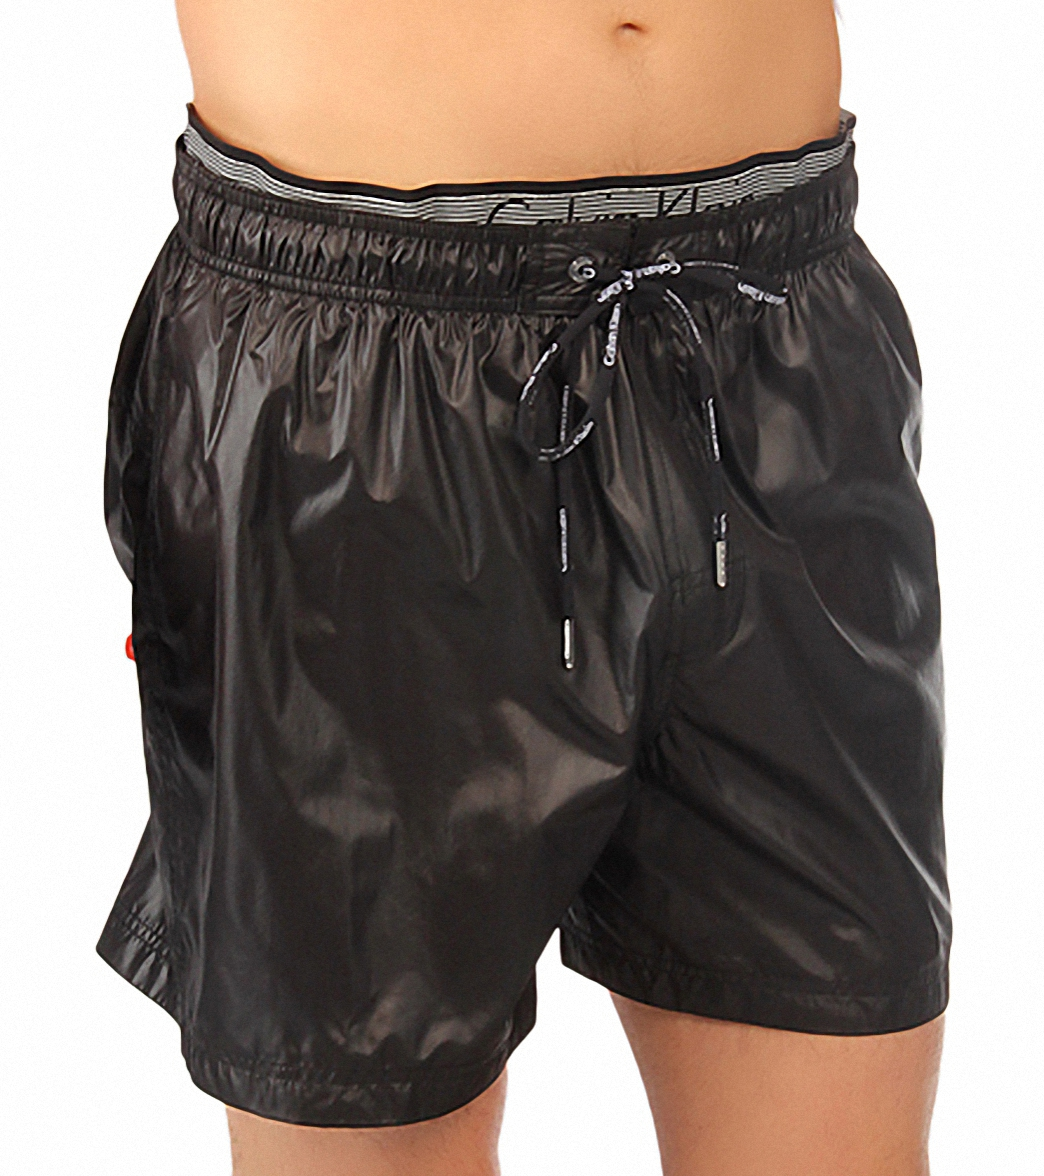 b878498b4d Calvin Klein Double Waistband Volley Swim Trunk at SwimOutlet.com ...